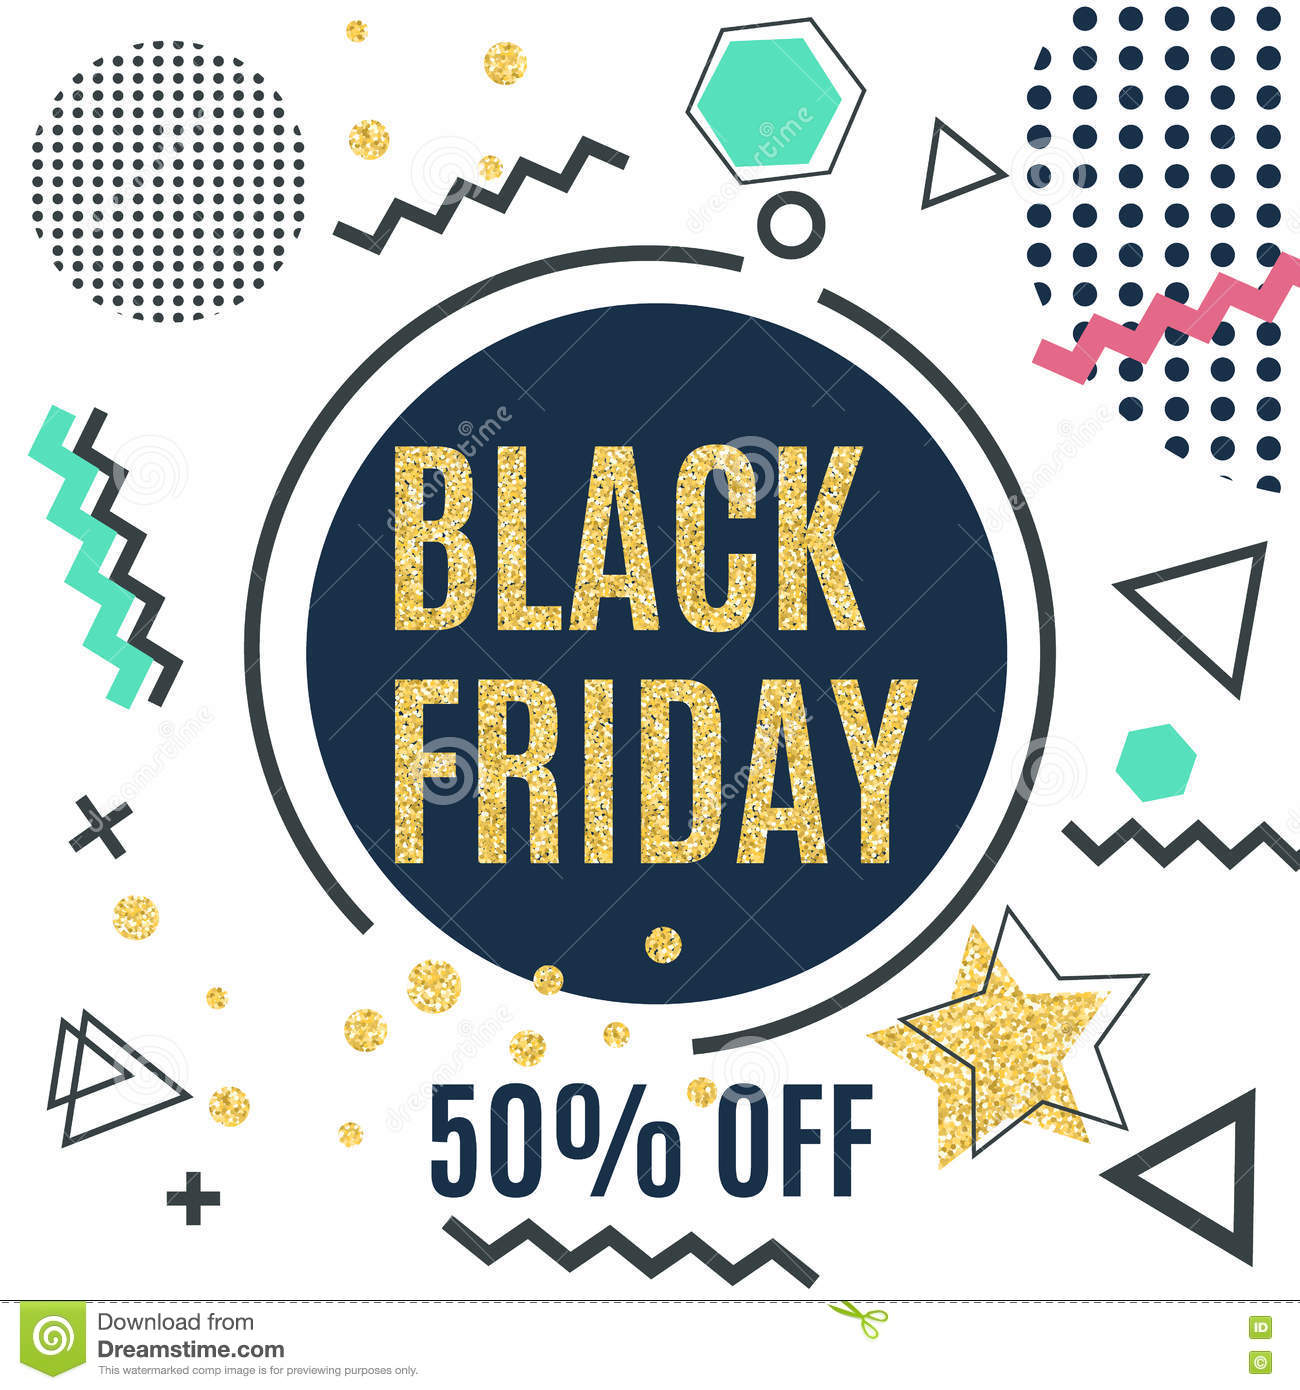 Black Friday Sale Poster in Memphis Style with Trendy Glittering Geometric Elements. Vector illustration.